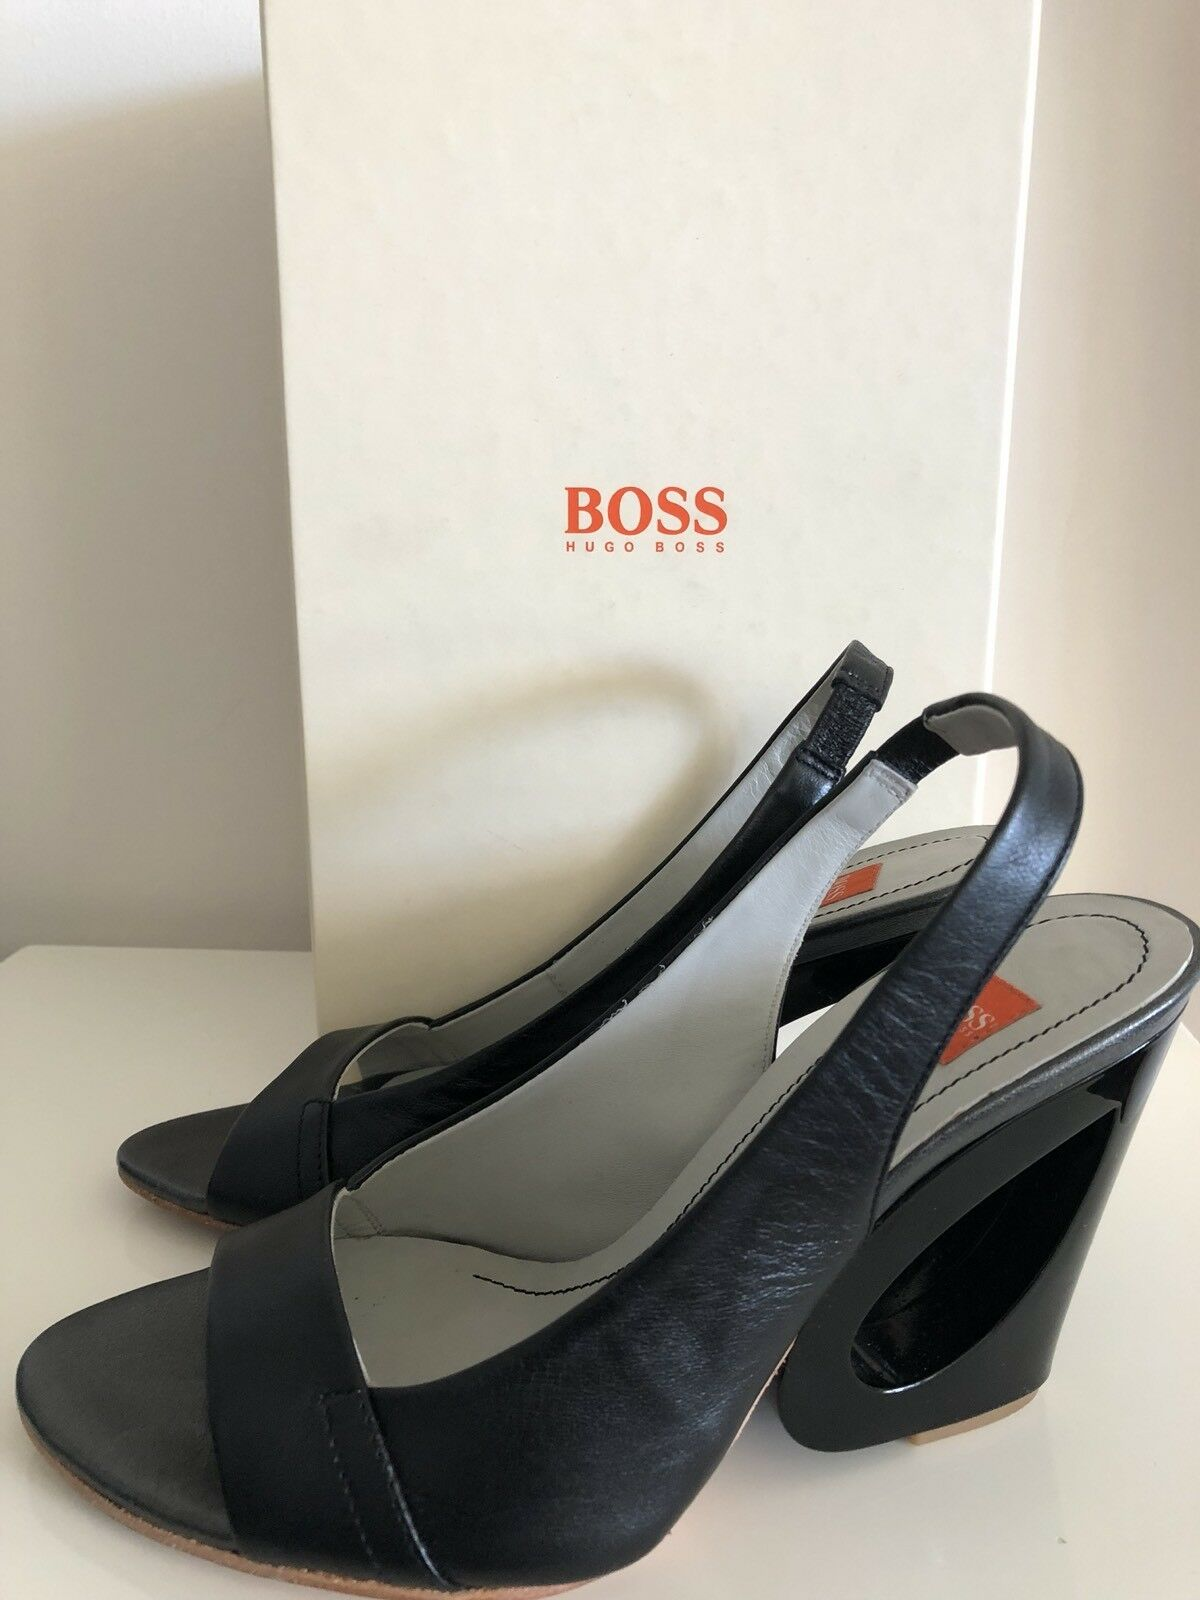 Guess Closed Bivona2 Closed Guess Pointed Toe Strap Open Side Heels 357, Black Multi, 5.5 UK 882818